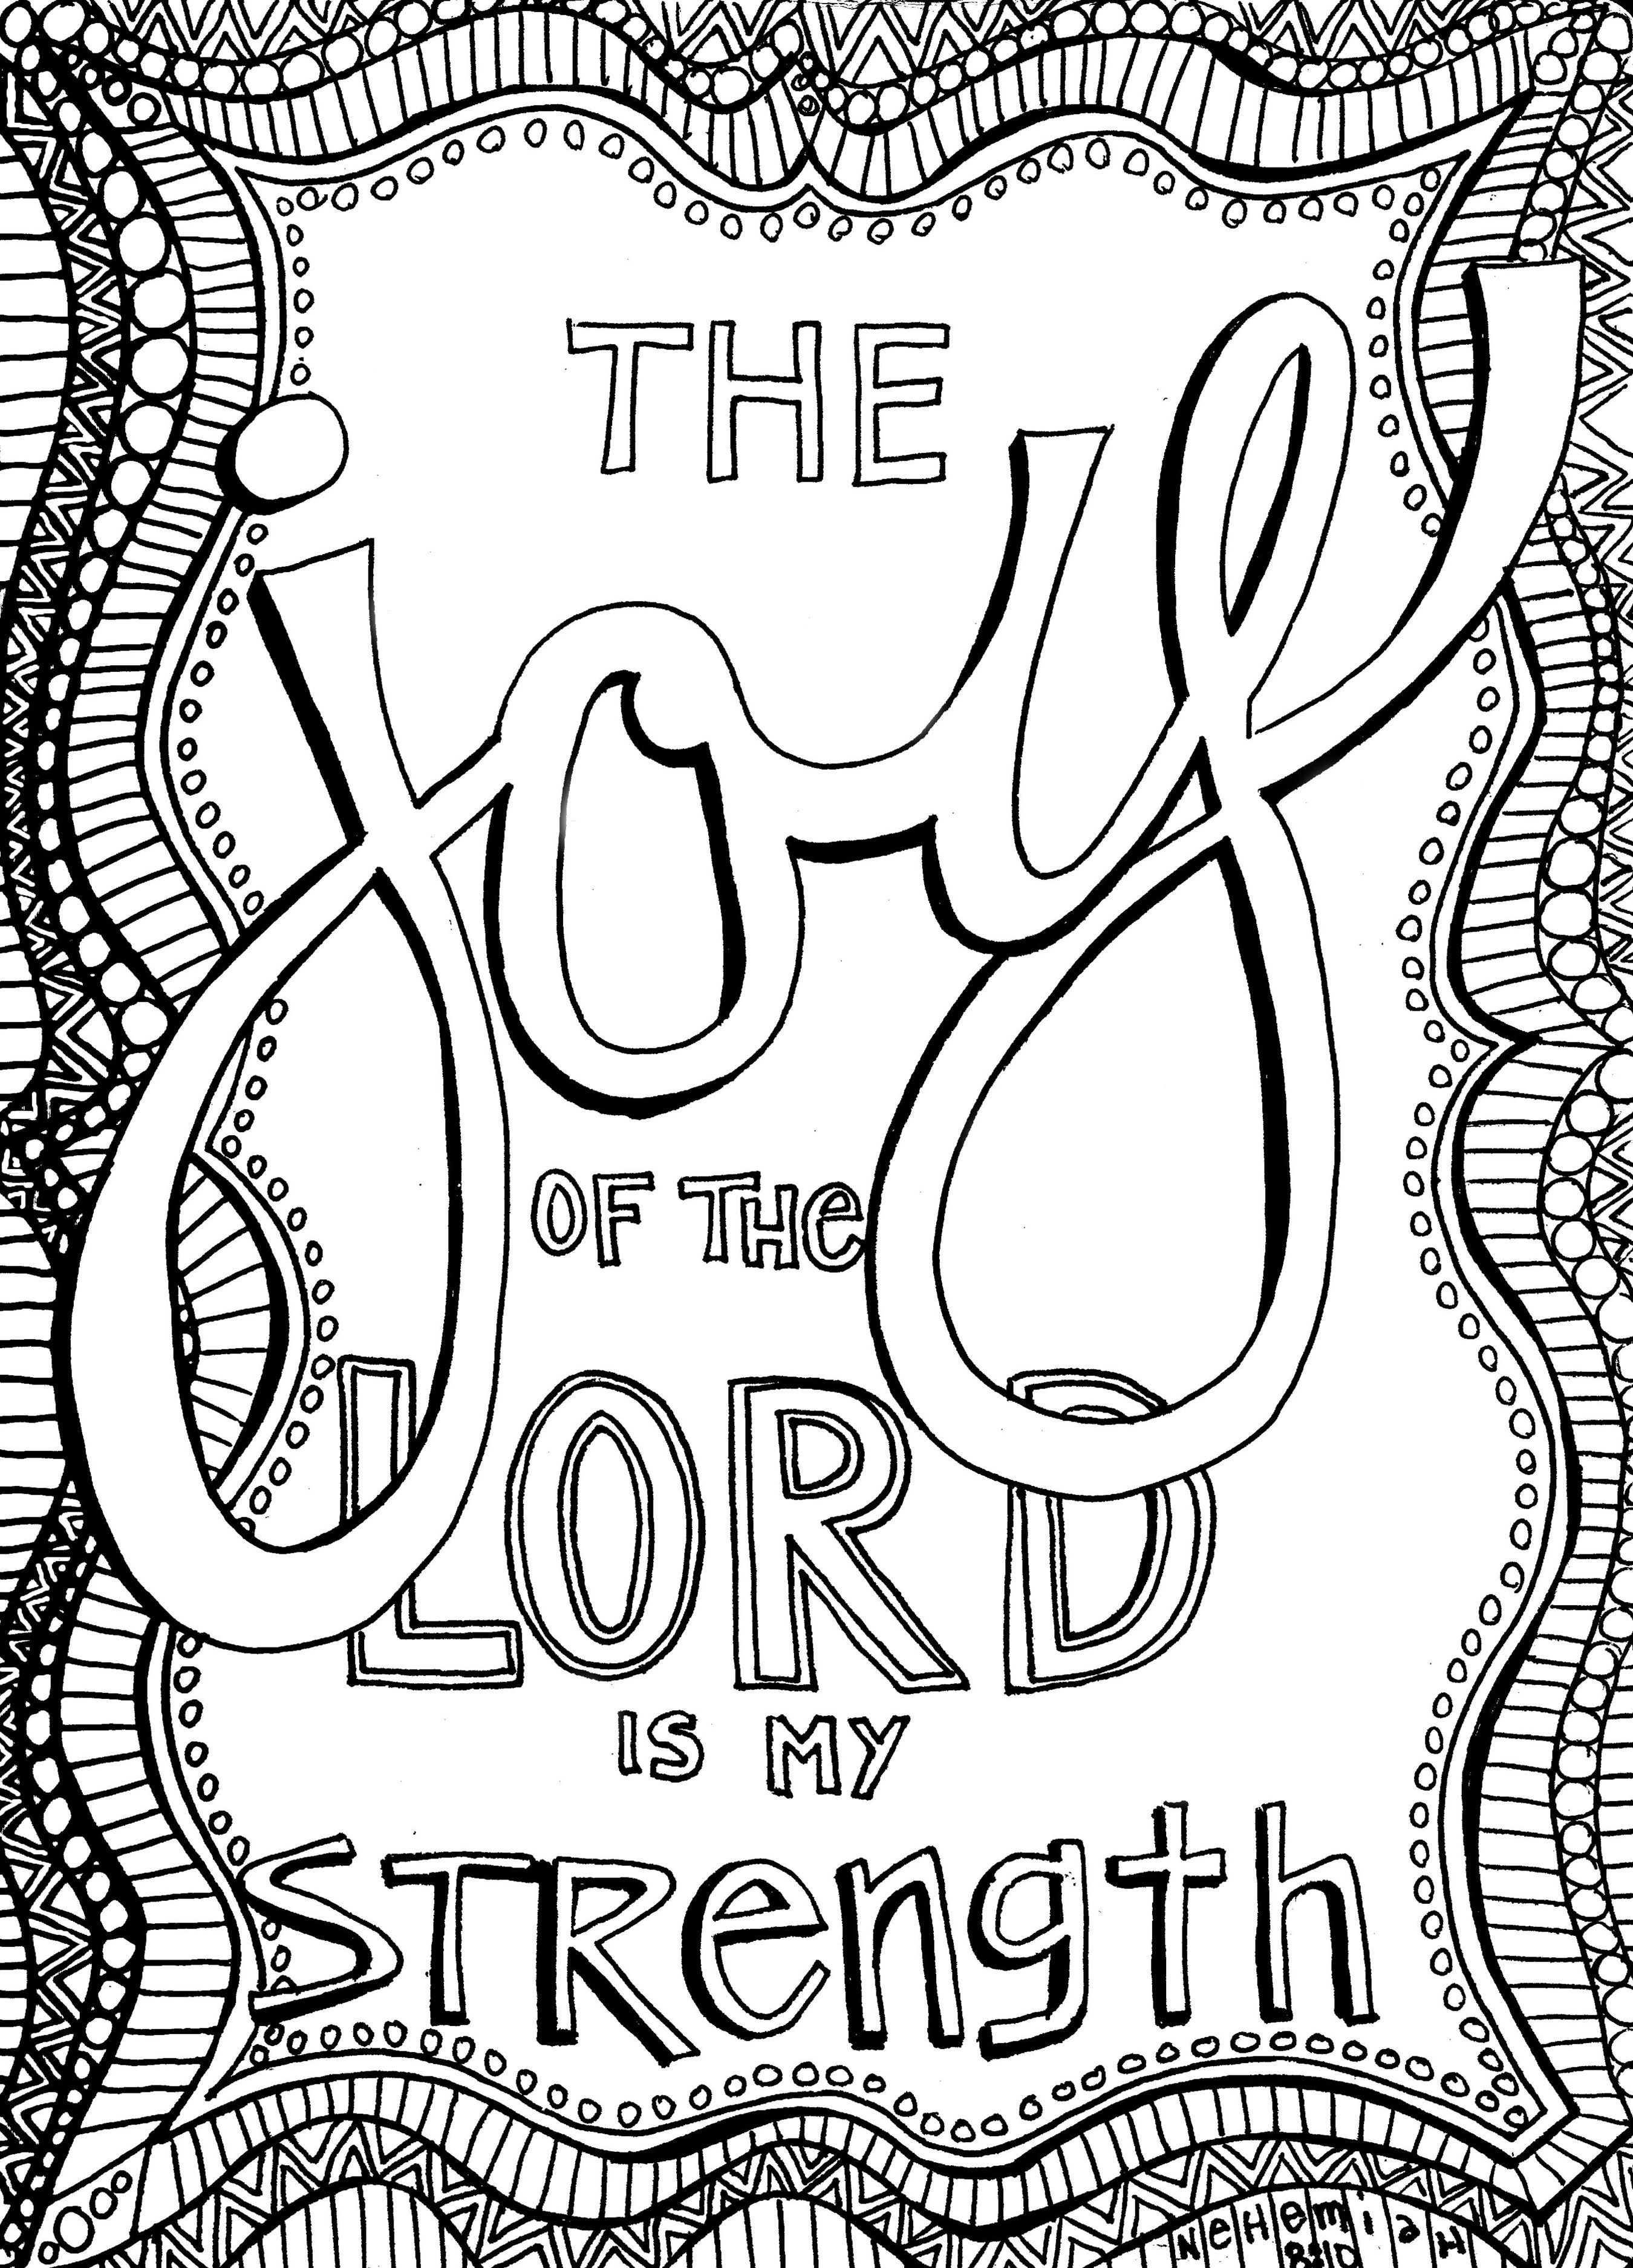 Freeble Christian Coloring Pages With Scriptures Images Cross For ... | 3750x2700